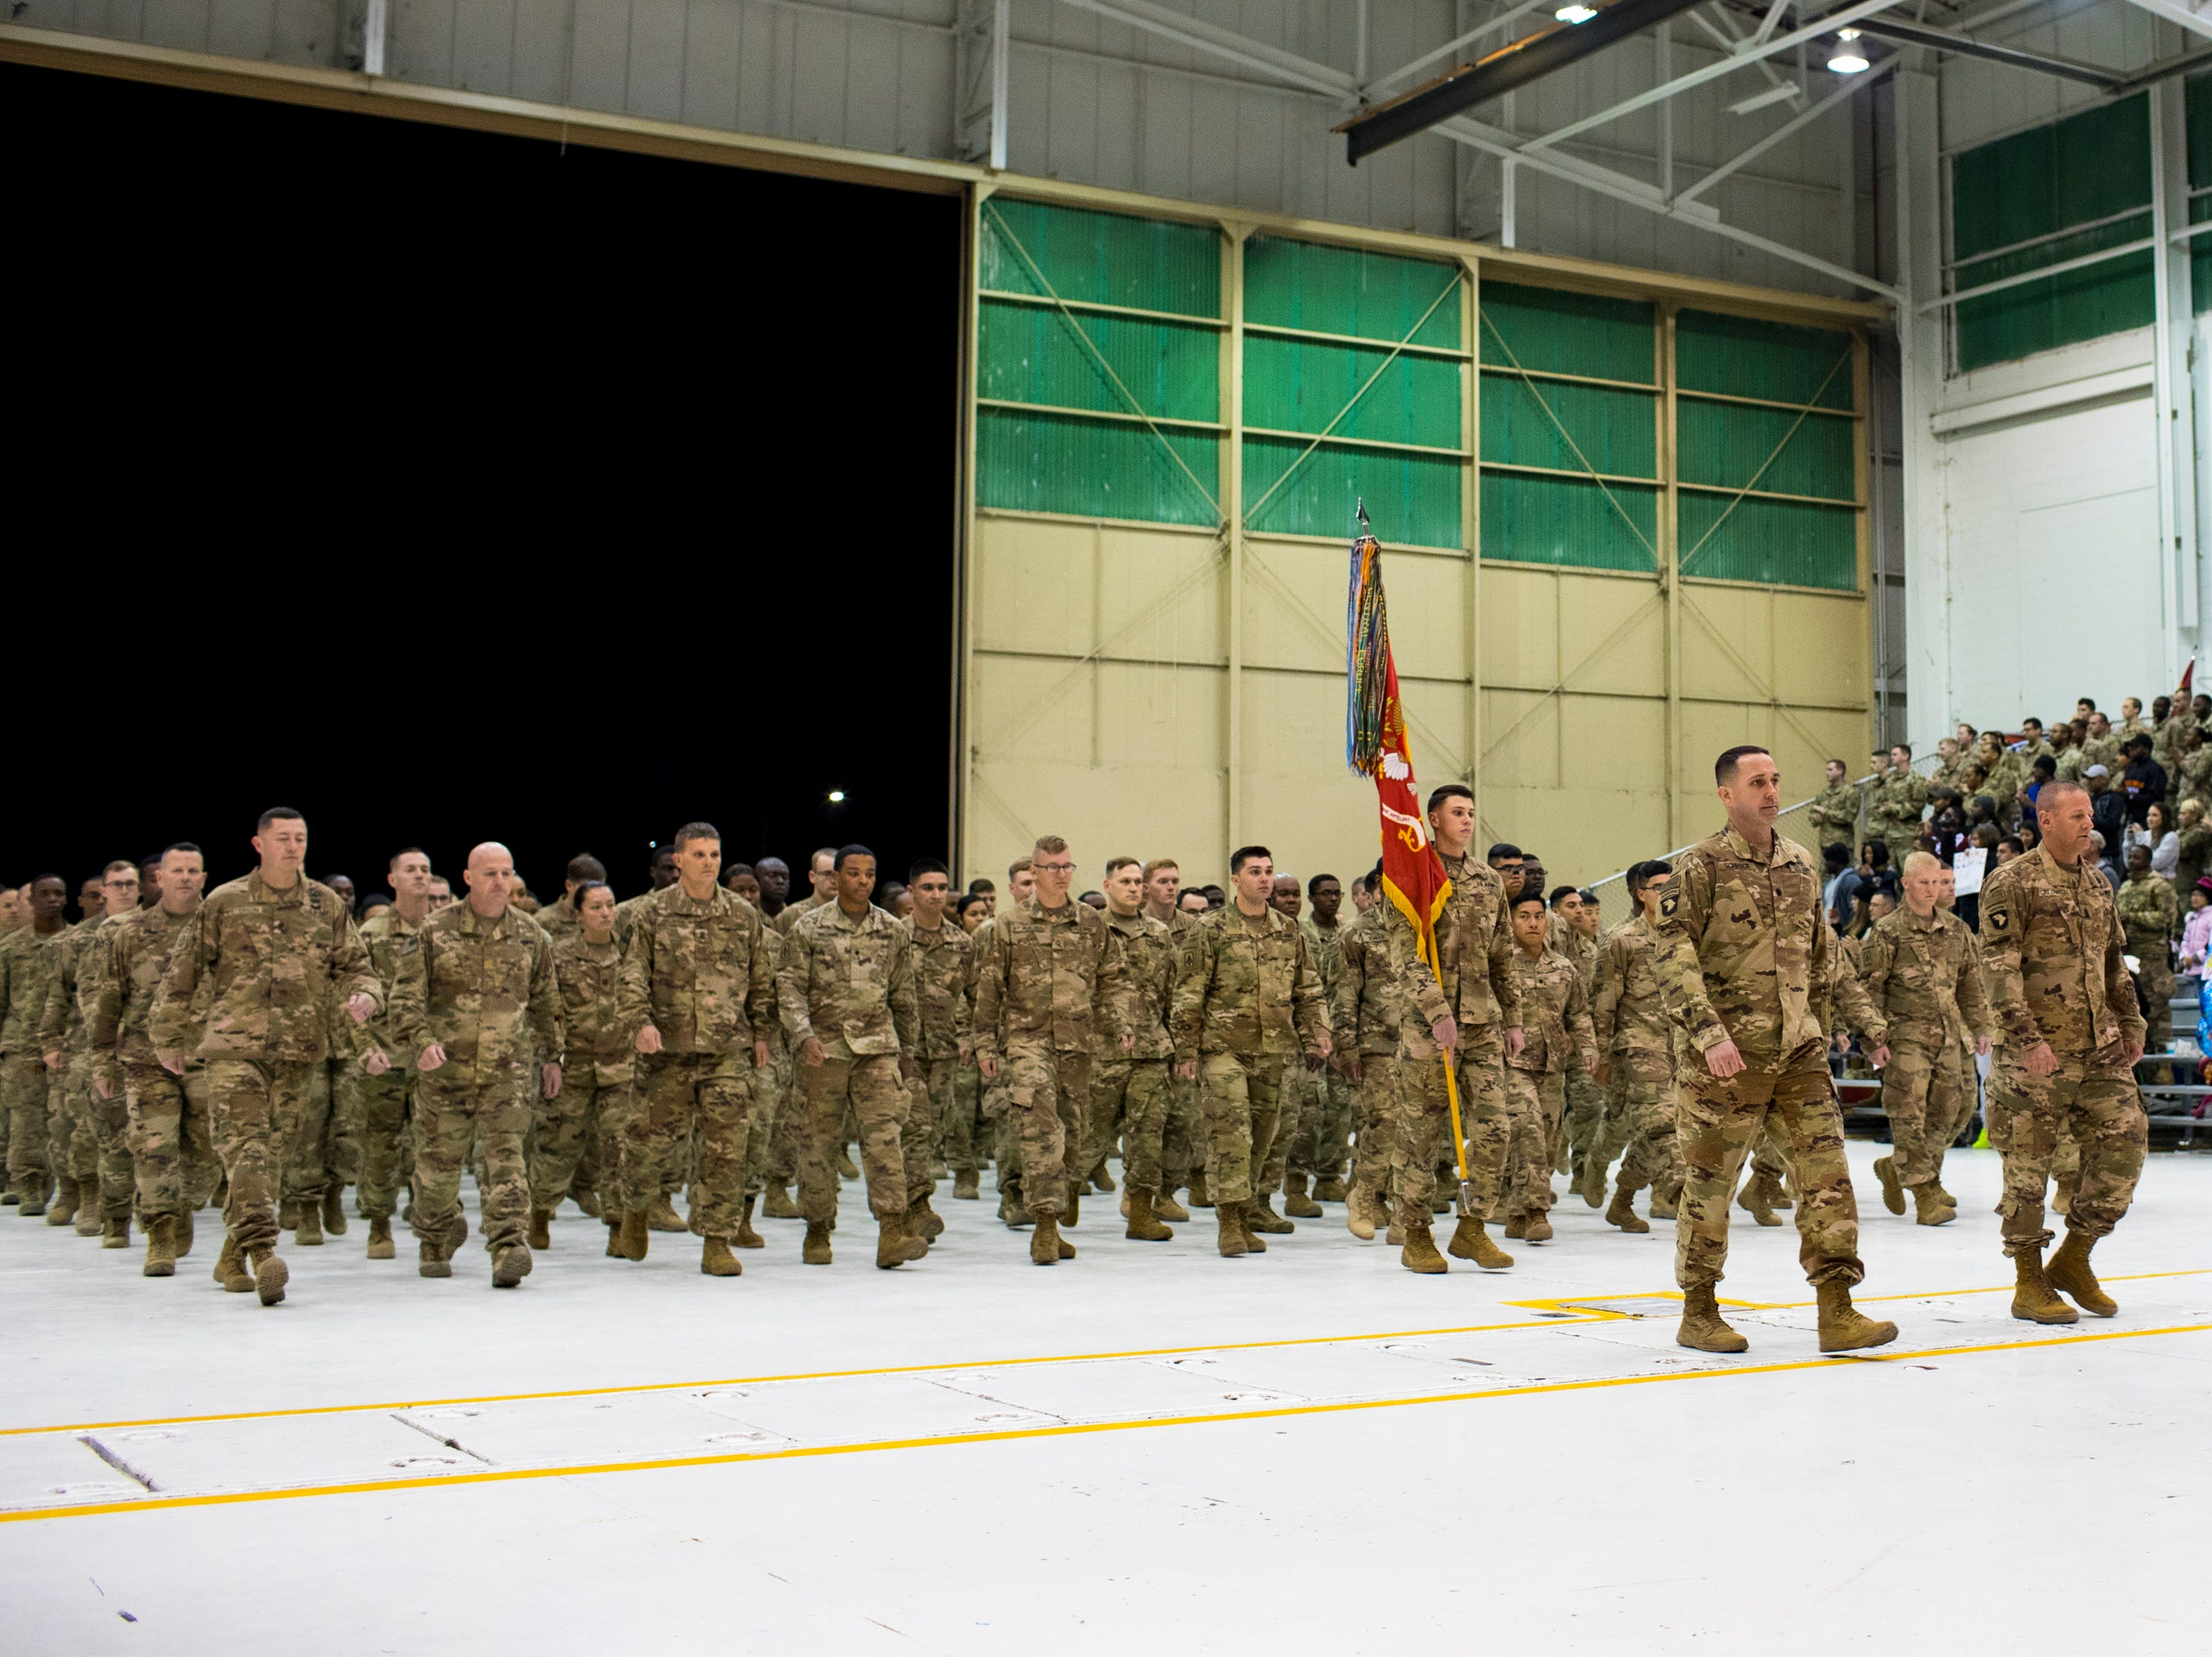 The soldiers enter the welcome home ceremony for the 2nd Battalion, 44th Air Defense Artillery Regiment and 101st Airborne Division at Fort Campbell in the early hours of Monday, Nov. 19, 2018. The soldiers were returning from a 9-month deployment in Afghanistan.